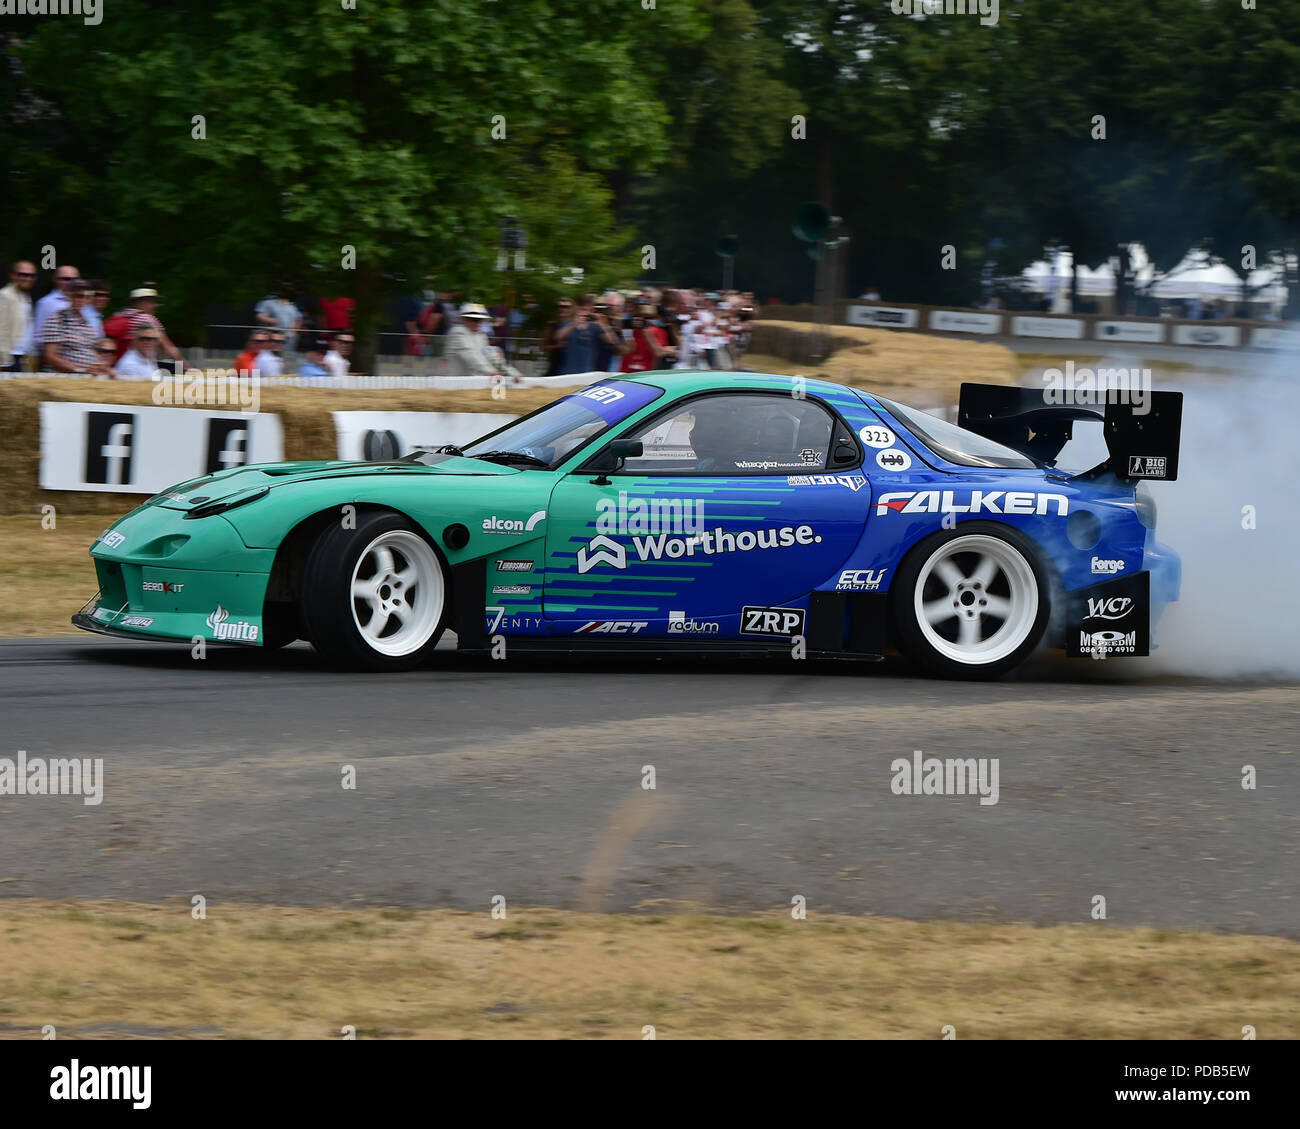 Drifting Cars Mazda Fd3s Rx7: Mazda Rx 7 Stock Photos & Mazda Rx 7 Stock Images